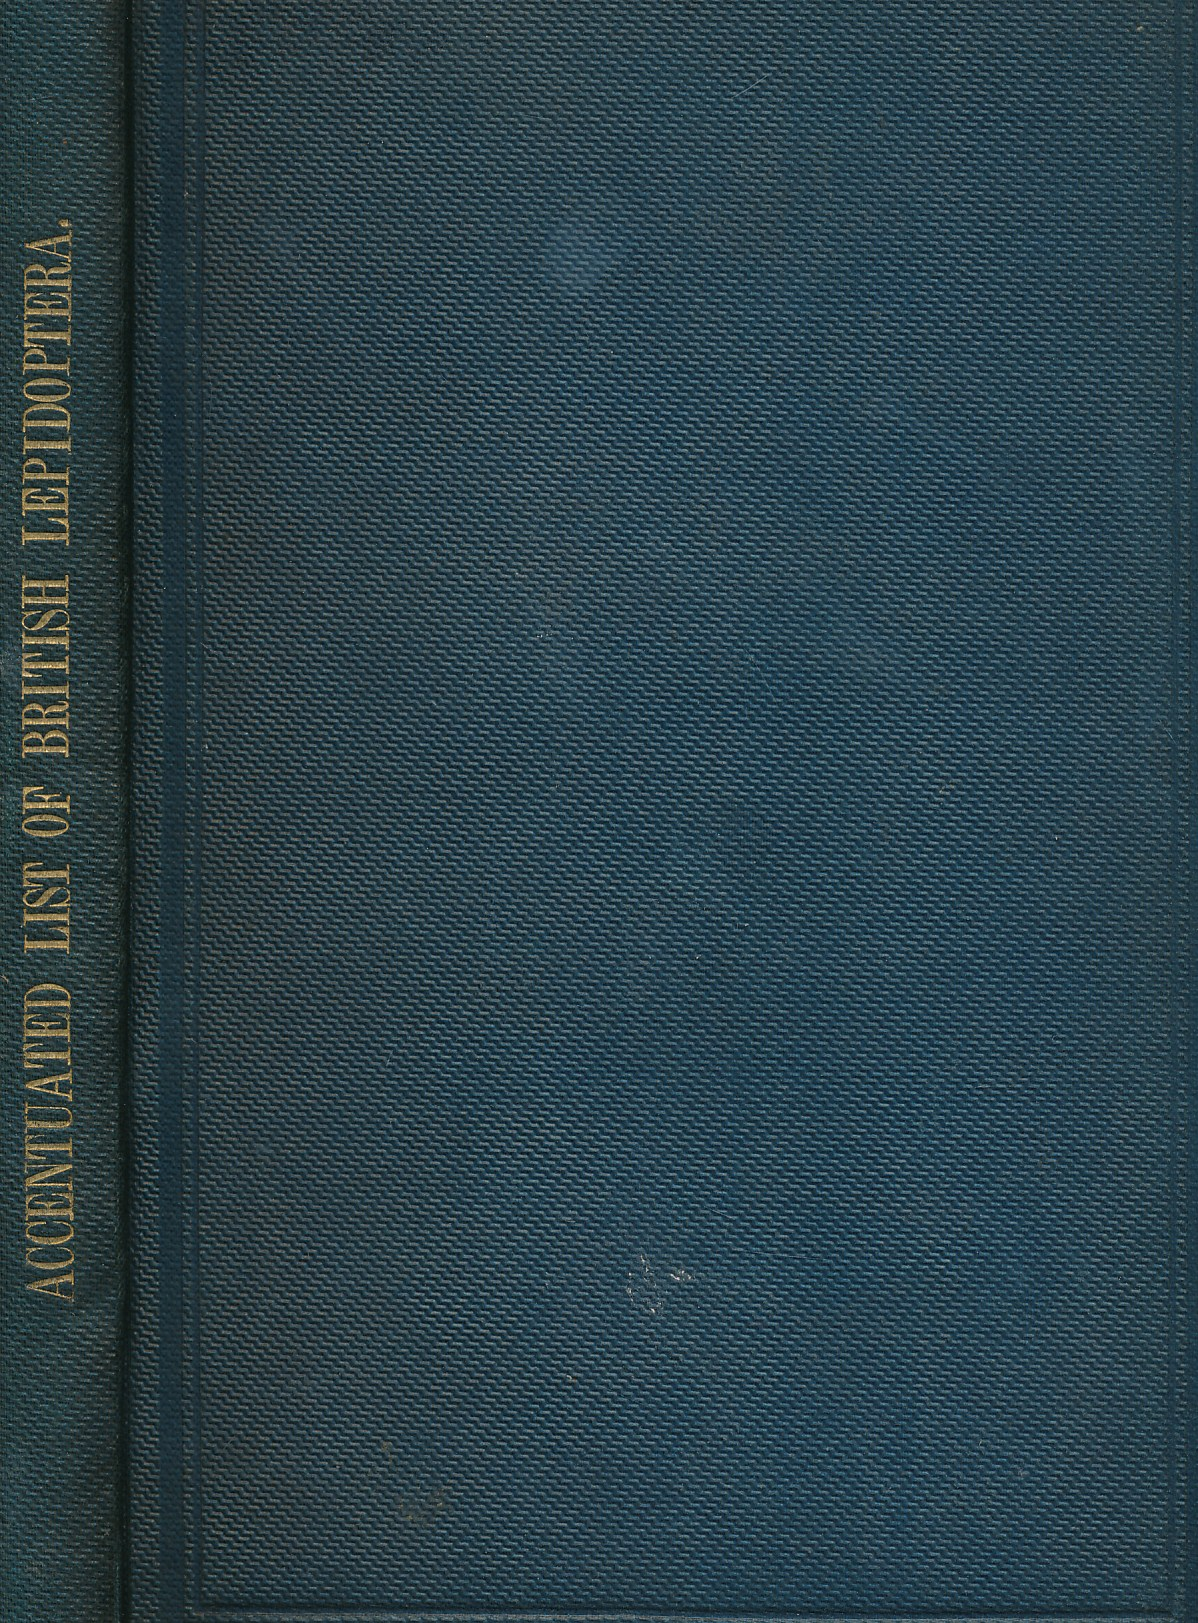 EDITOR - An Accentuated List of the British Lepidoptera, with Hints on the Derivation of the Names